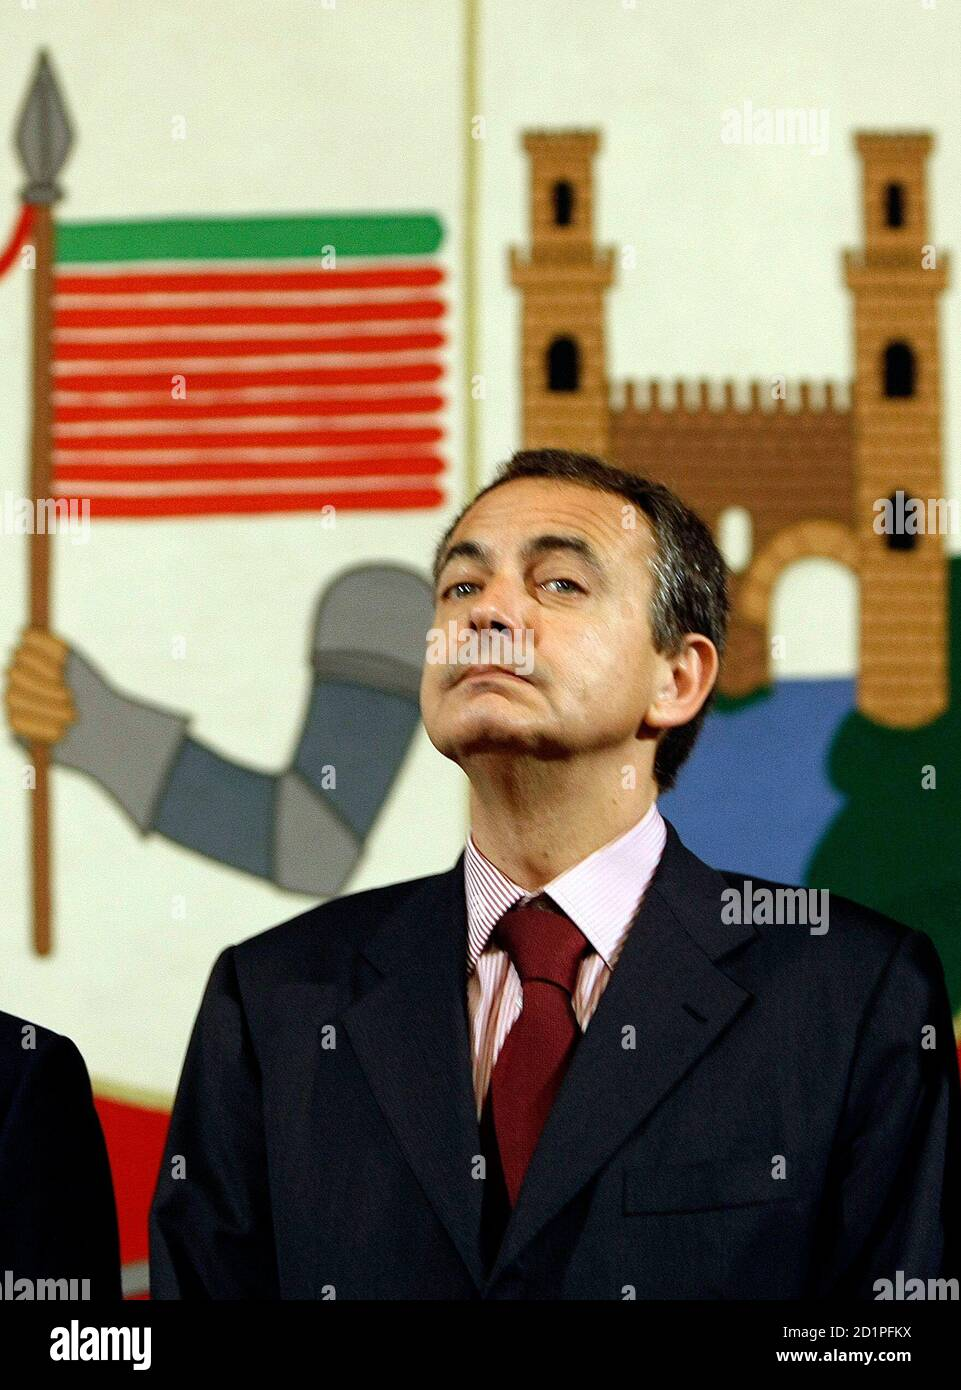 Spain's Prime Minister Jose Luis Rodriguez Zapatero looks around during his visit to Zamora's city hall along with his Portuguese counterpart Jose Socrates, at the Spain-Portugal summit January 22, 2009.  REUTERS/Sergio Perez (SPAIN) Banque D'Images